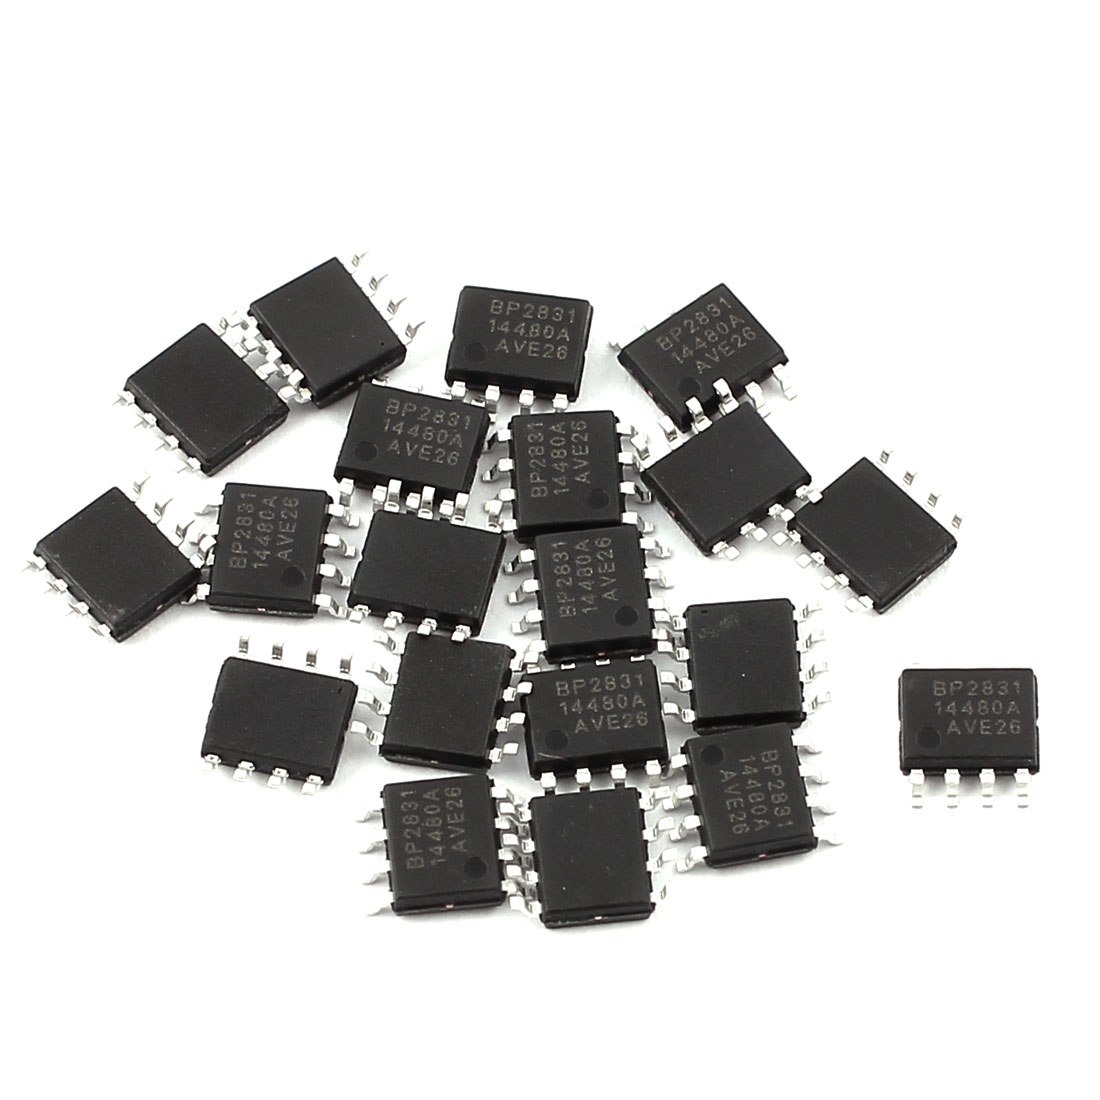 20Pcs BP2831 SOP-8 SMD SMT Type PCB Surface Mount LED Driver Circuit Module Integrated Circuit IC Chip